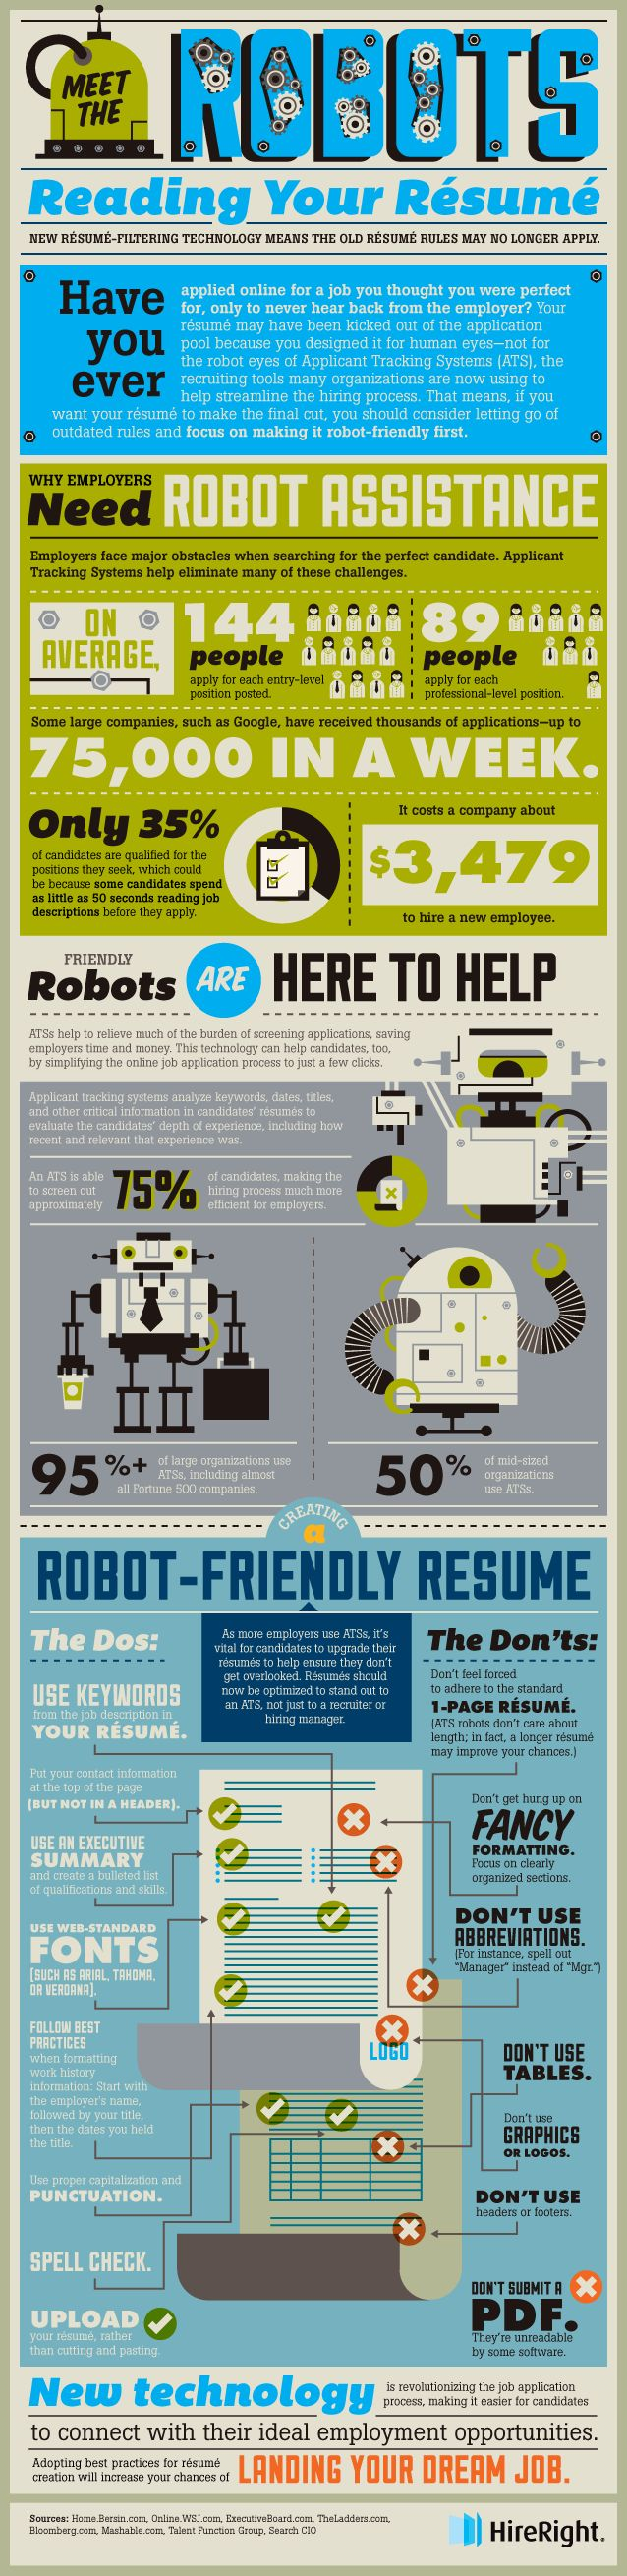 Your resume might have to get past a robot before a potential employer sees it.